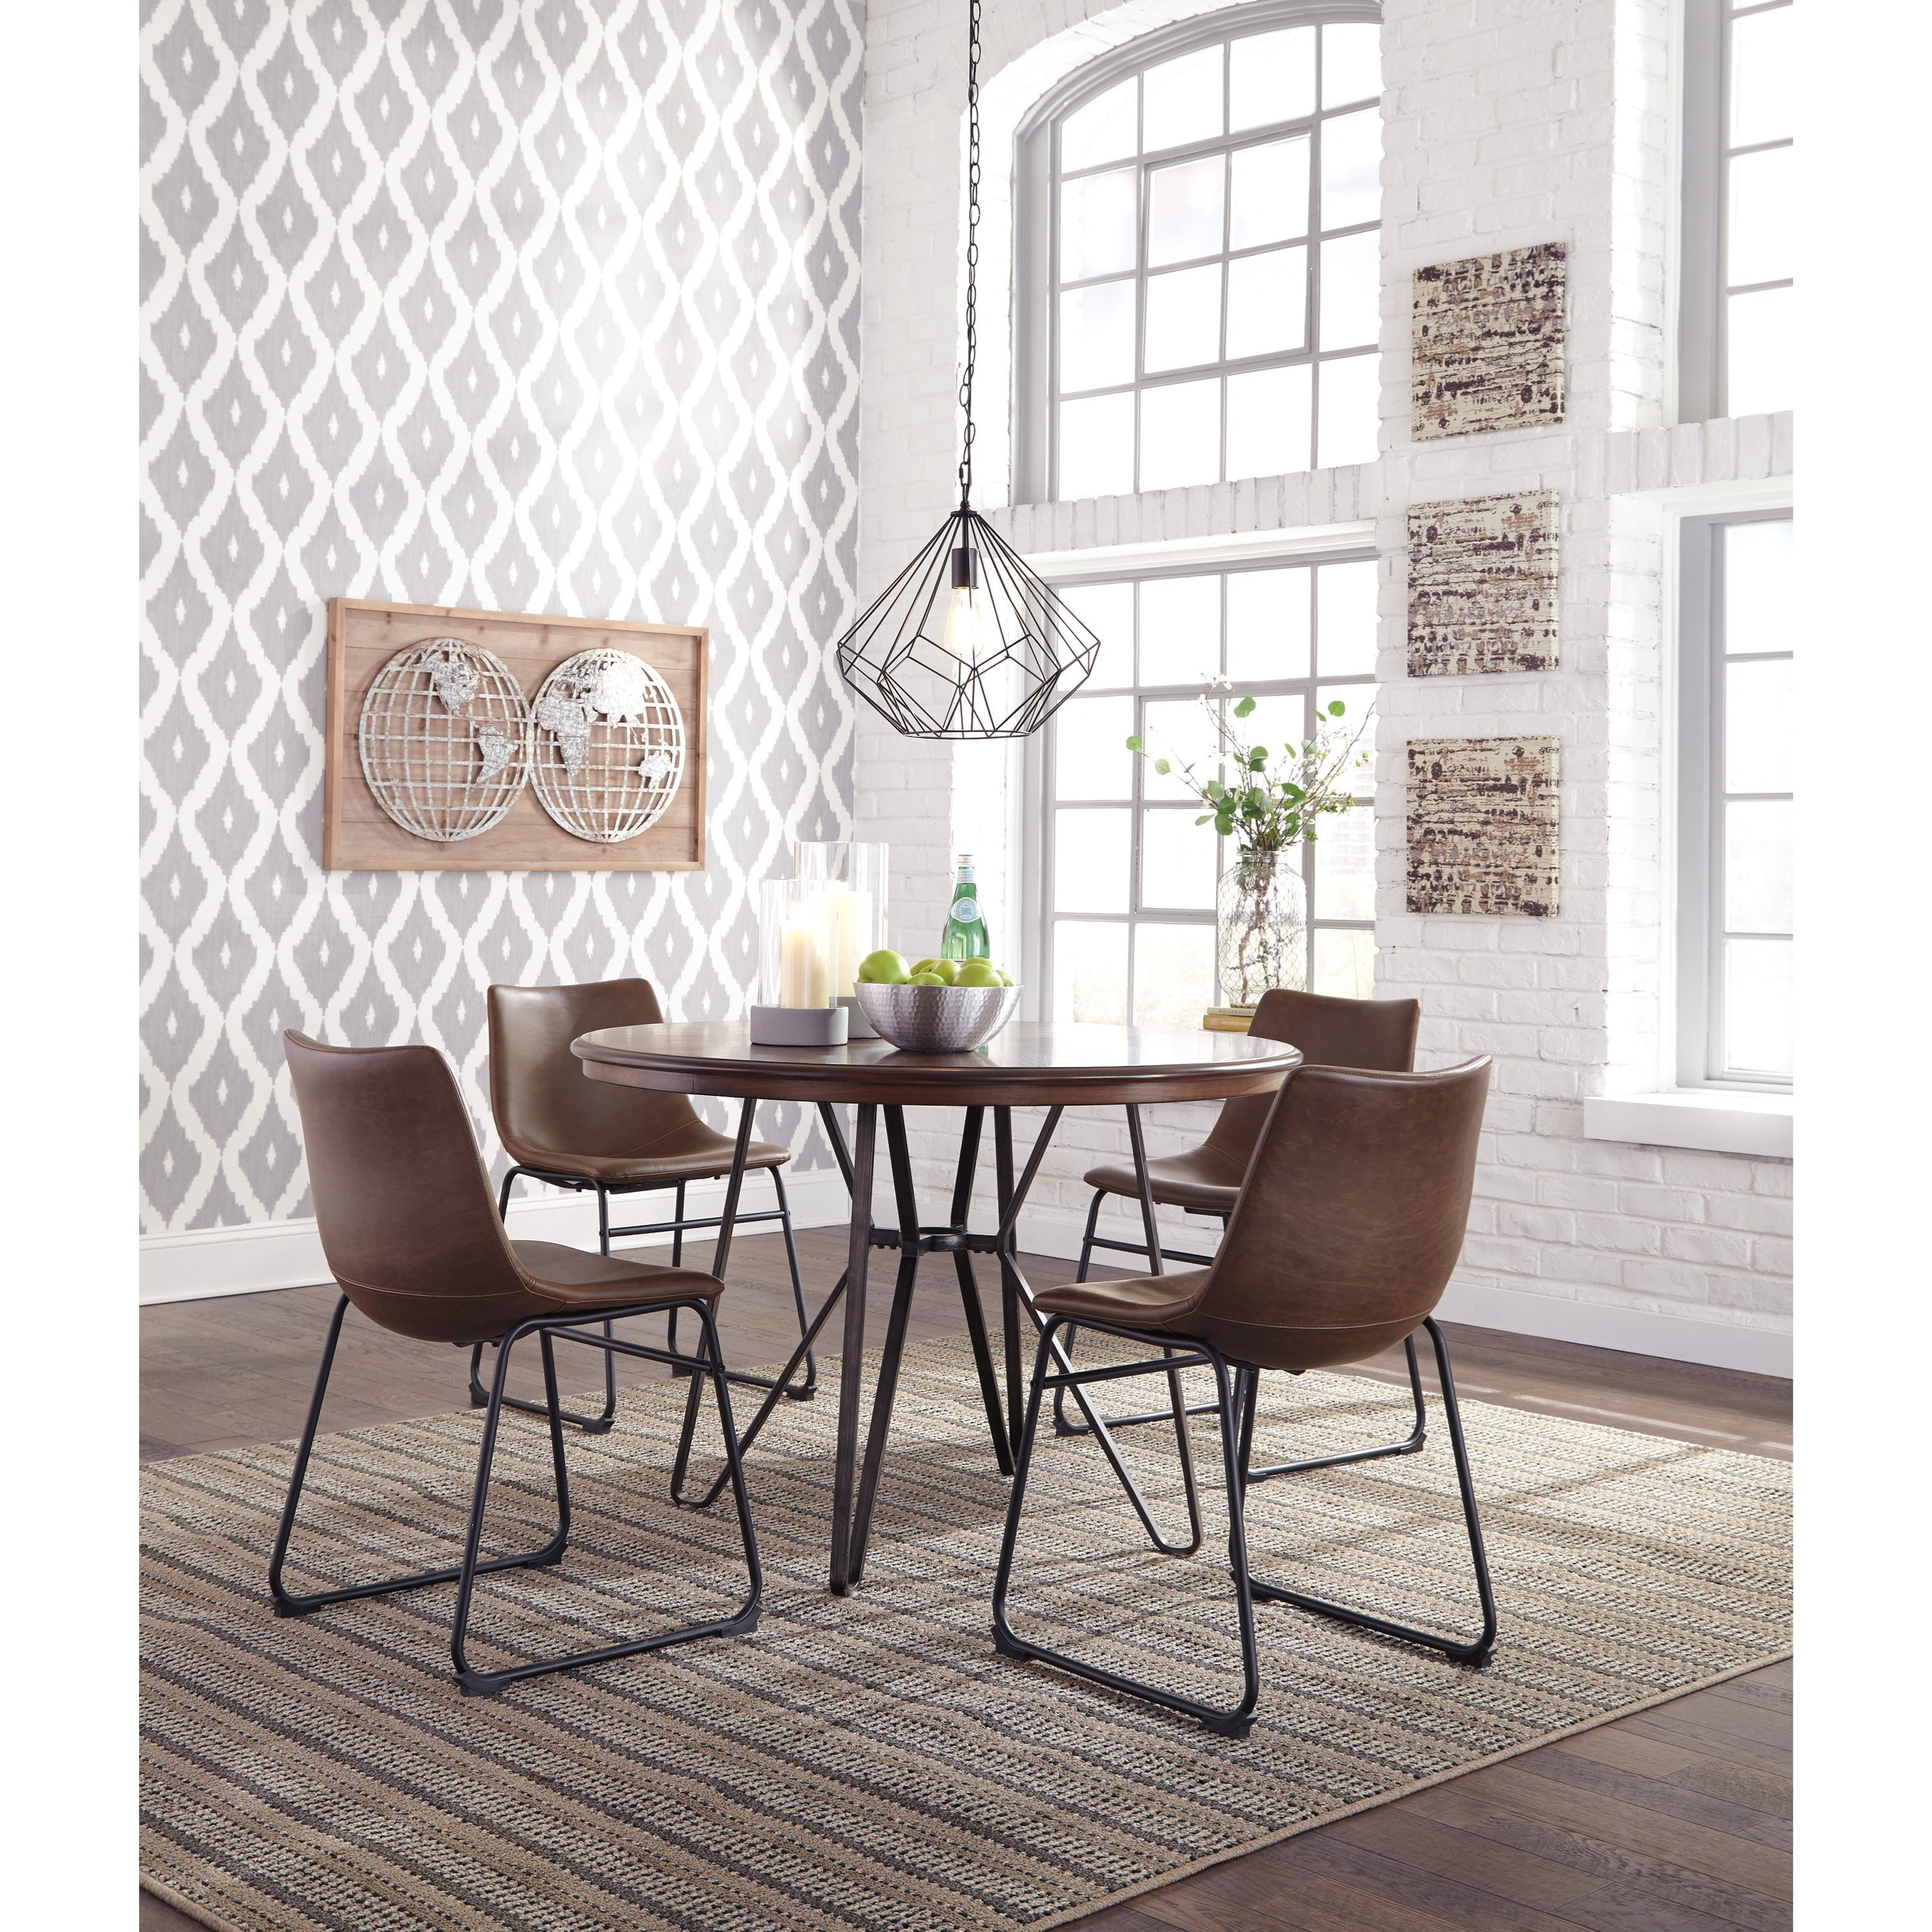 5 Piece Small Round Table And 4 Dining Chairs: 5-Piece Round Dining Table Set By Signature Design By